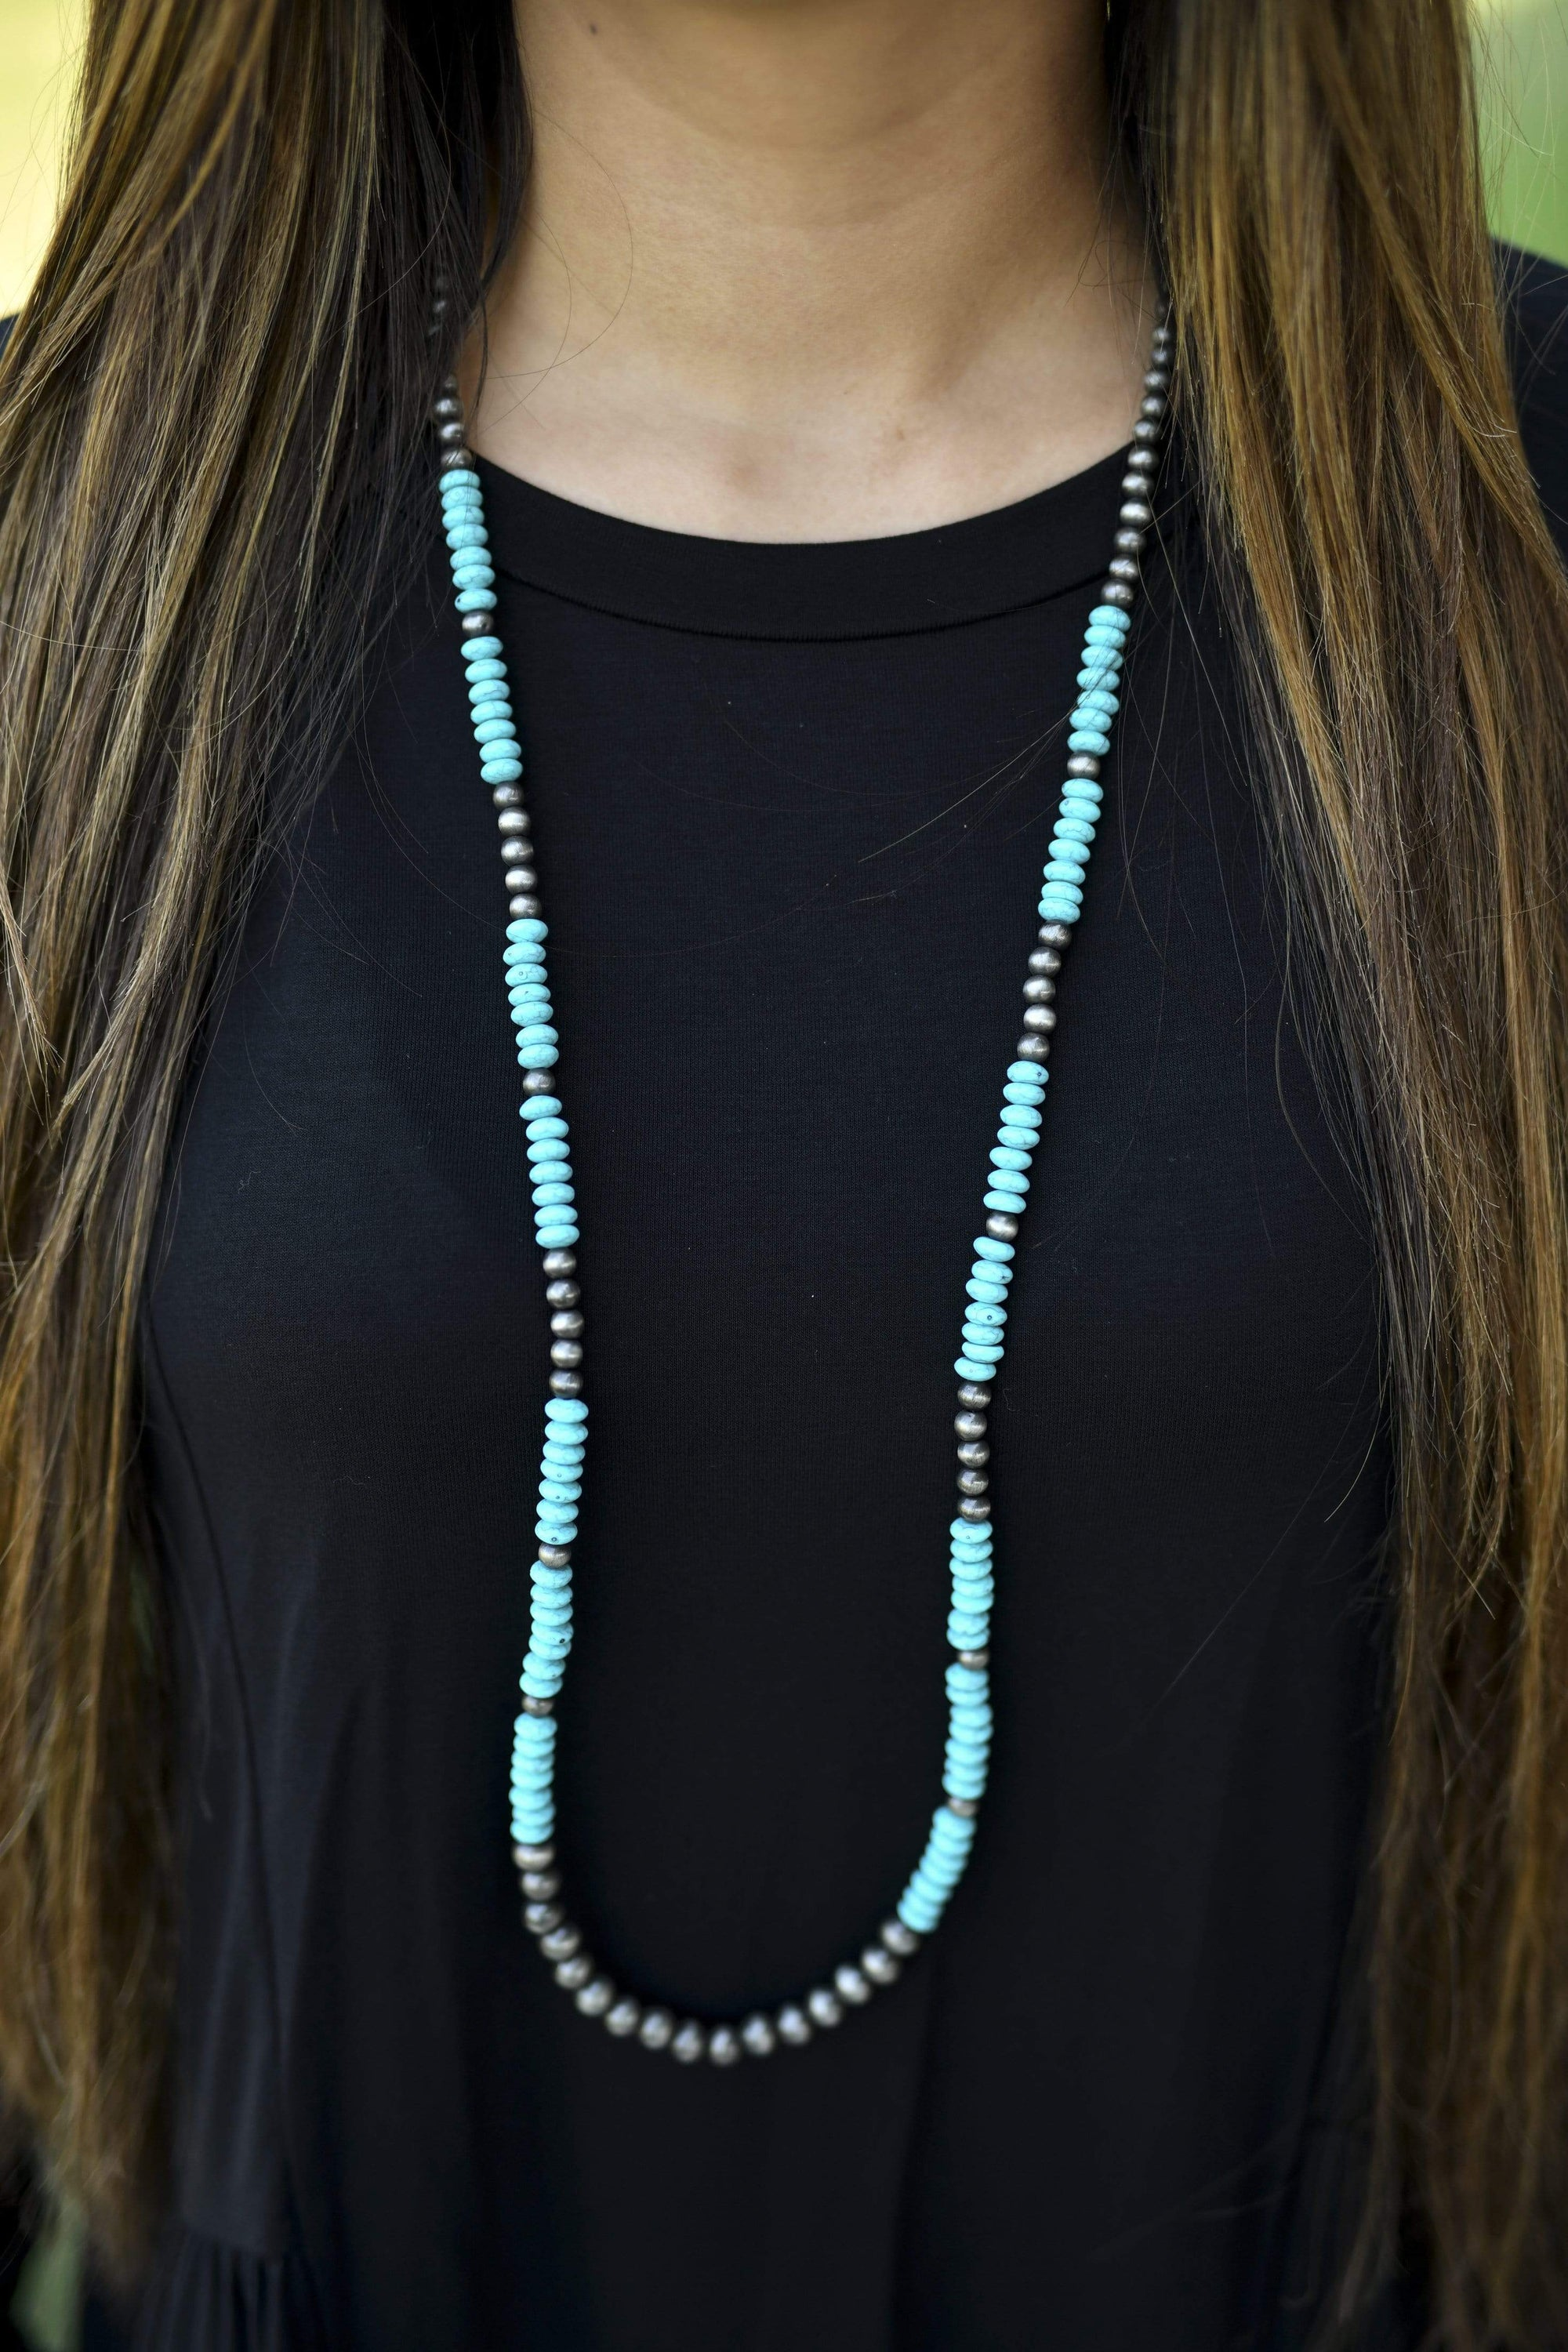 Accessorize In Style Fashion Necklaces Fashion Single Turquoise /Silver Necklace Hannah